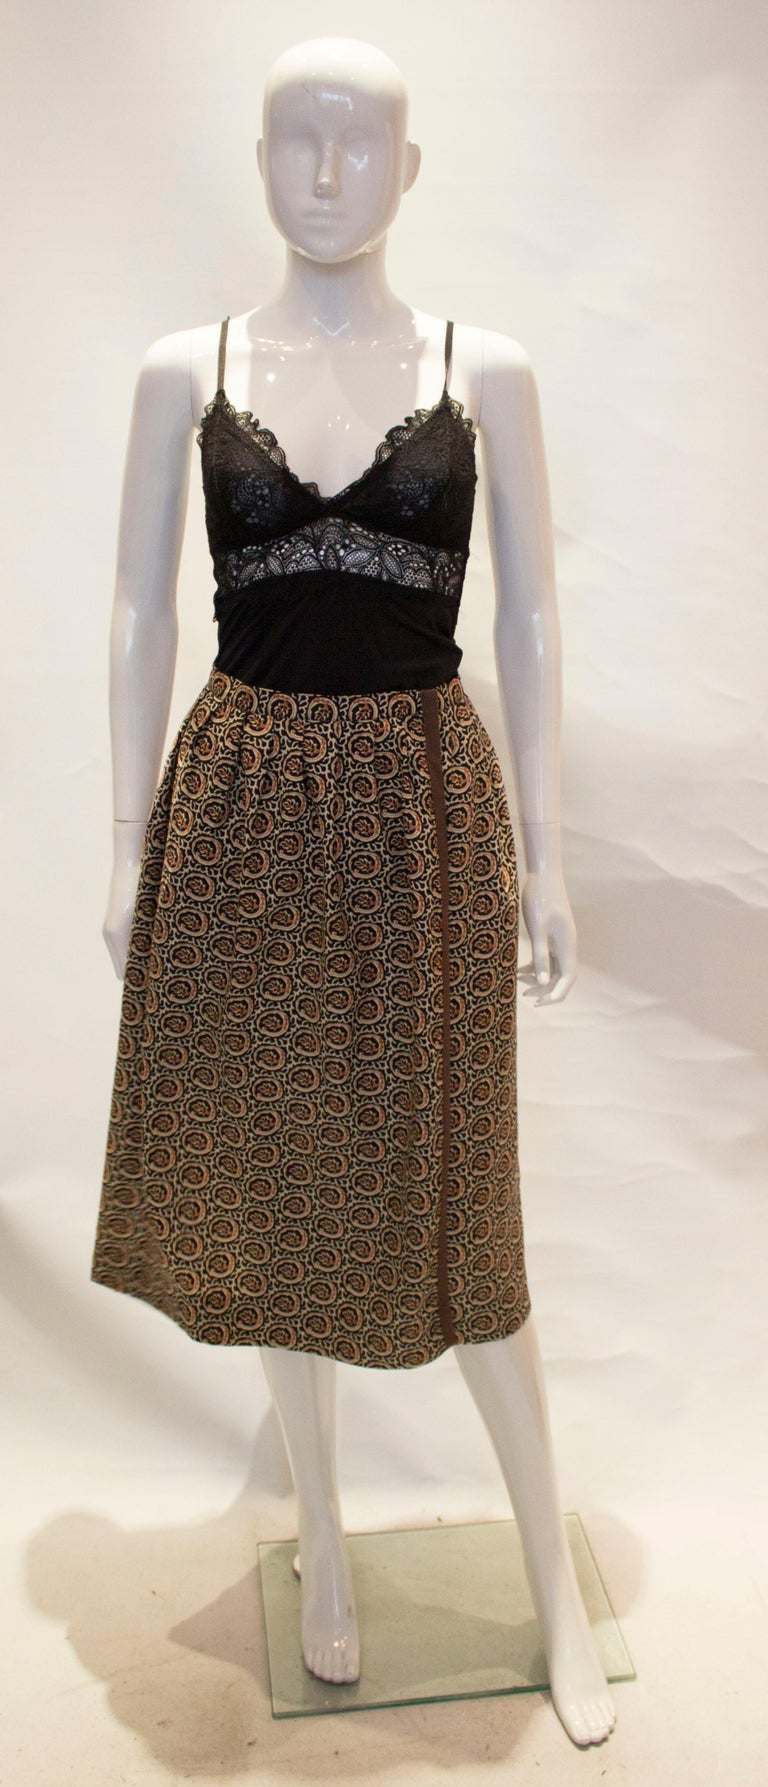 A great vintage skirt for Fall from Yves Saint Laurent., Rive Gauche line.